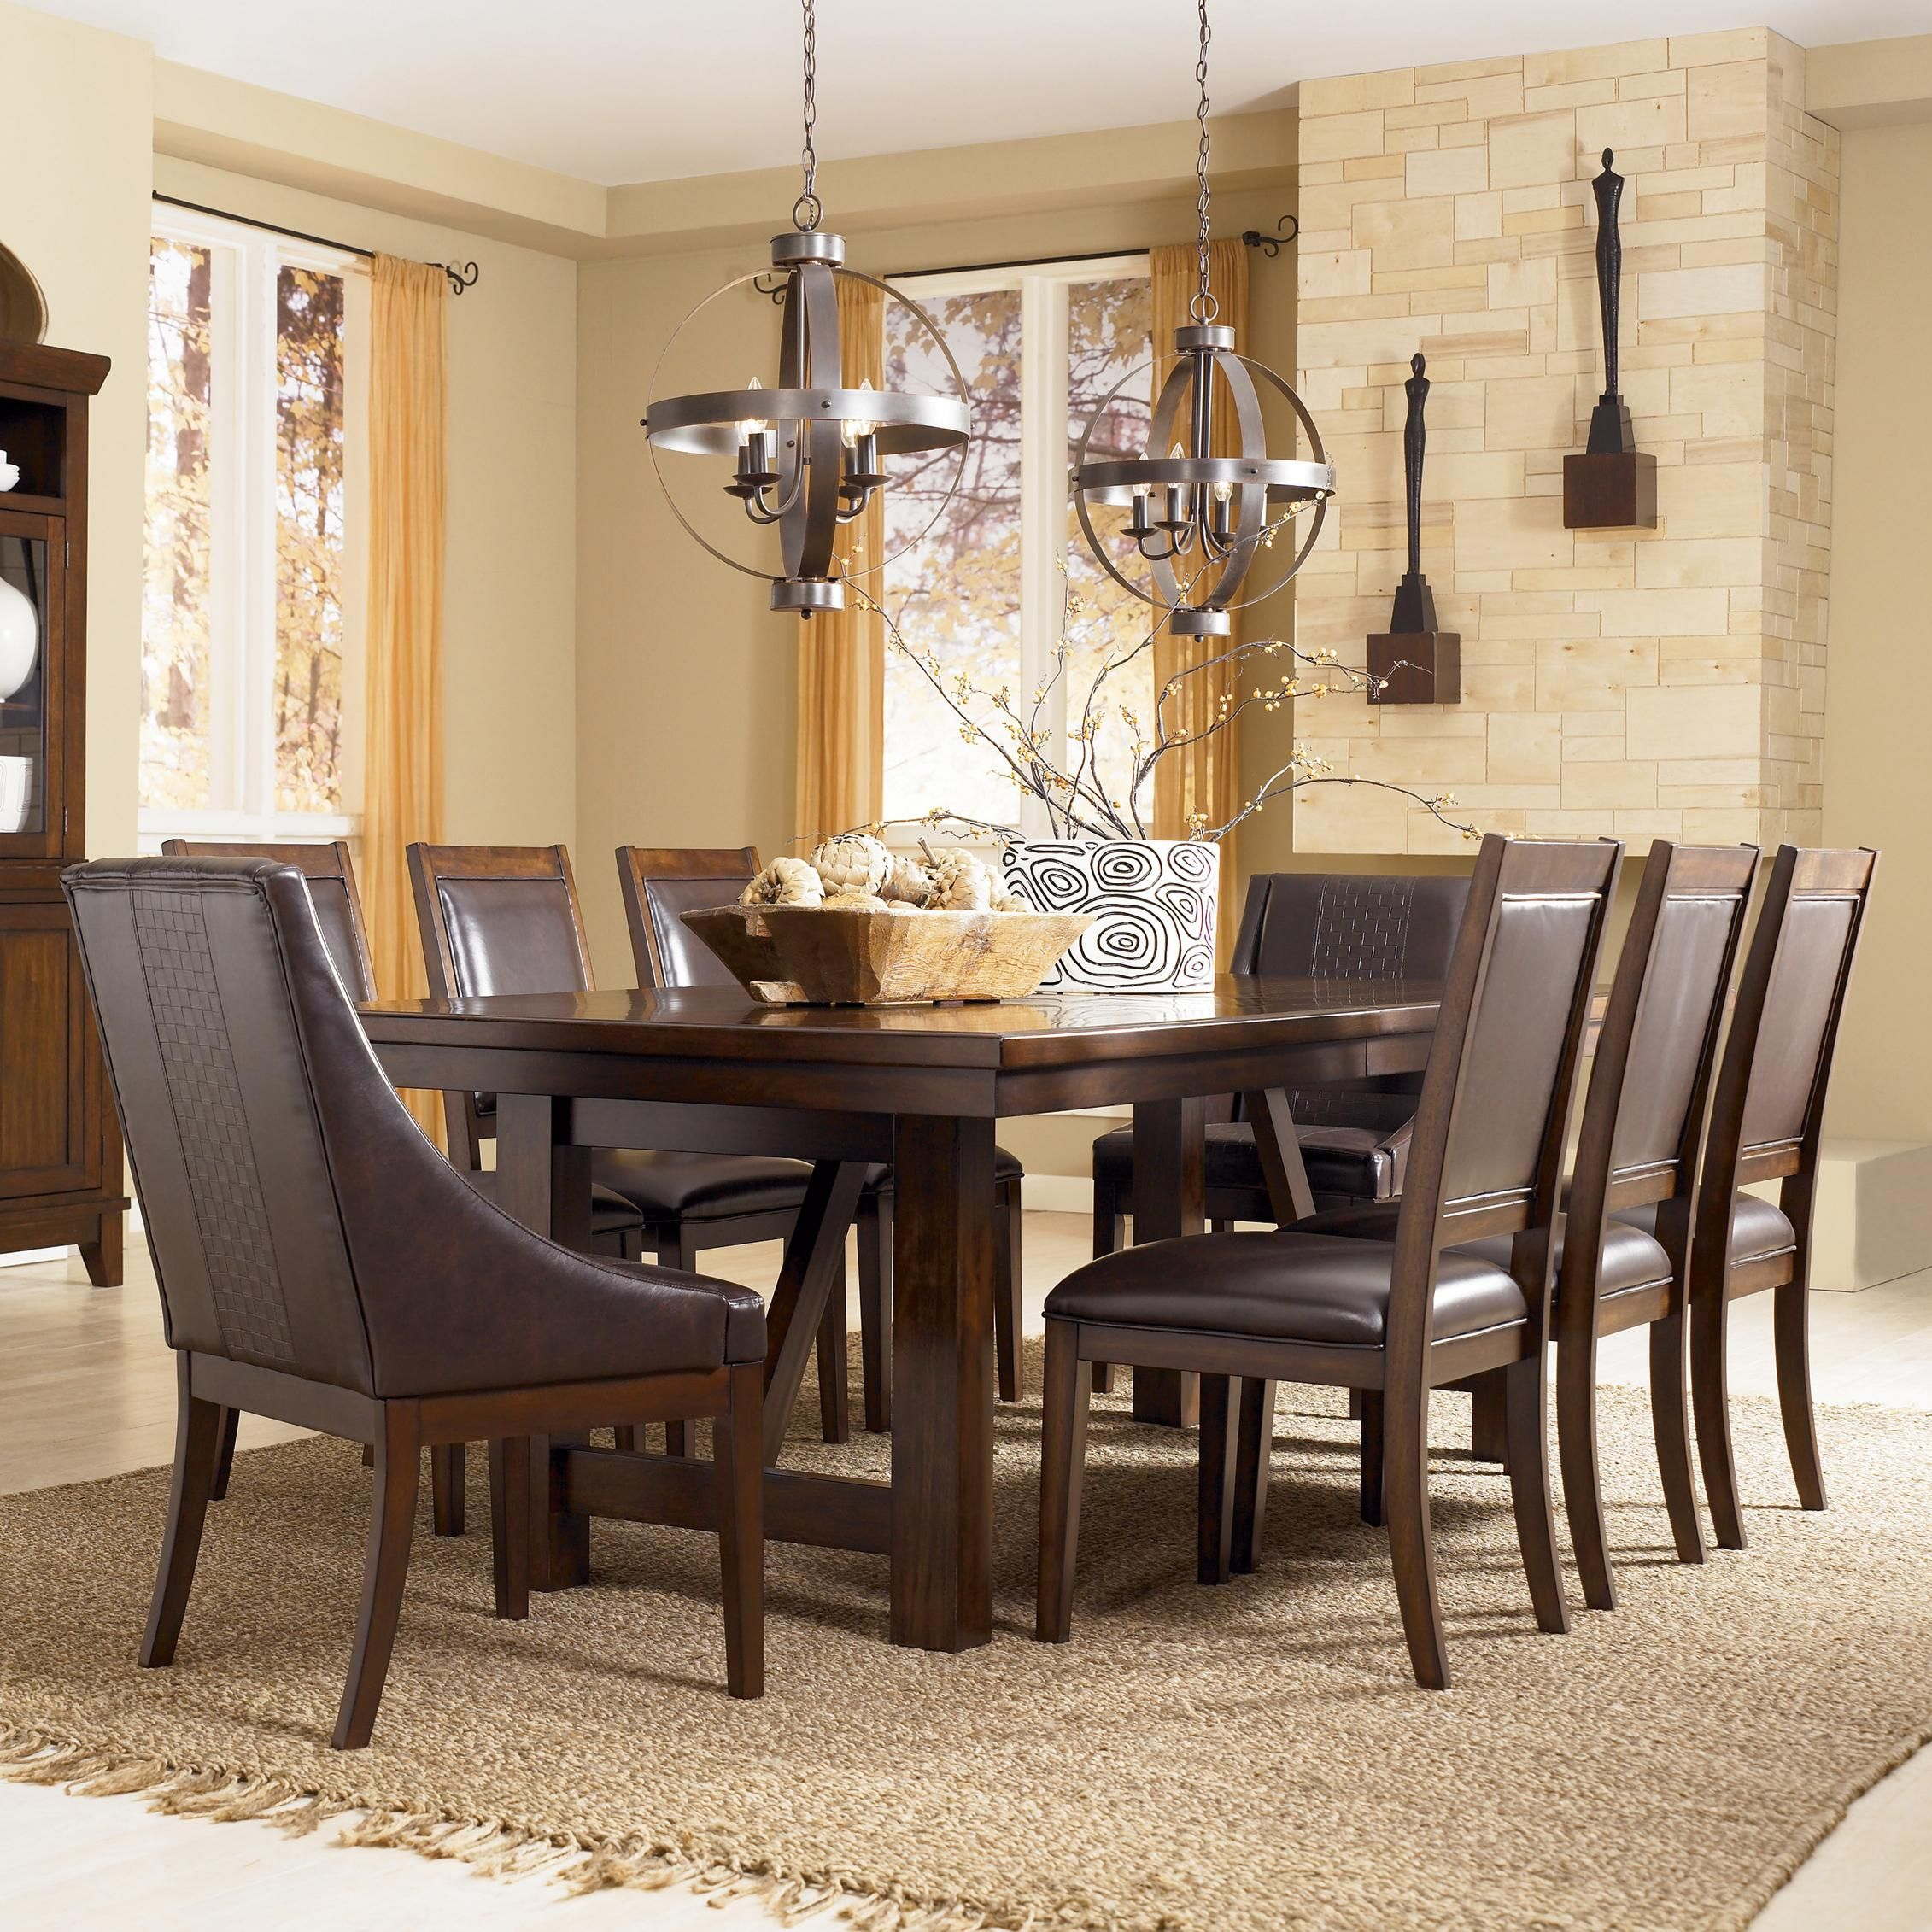 Holloway Dining Room Set By Millennium Ashley Furniture New Chairs